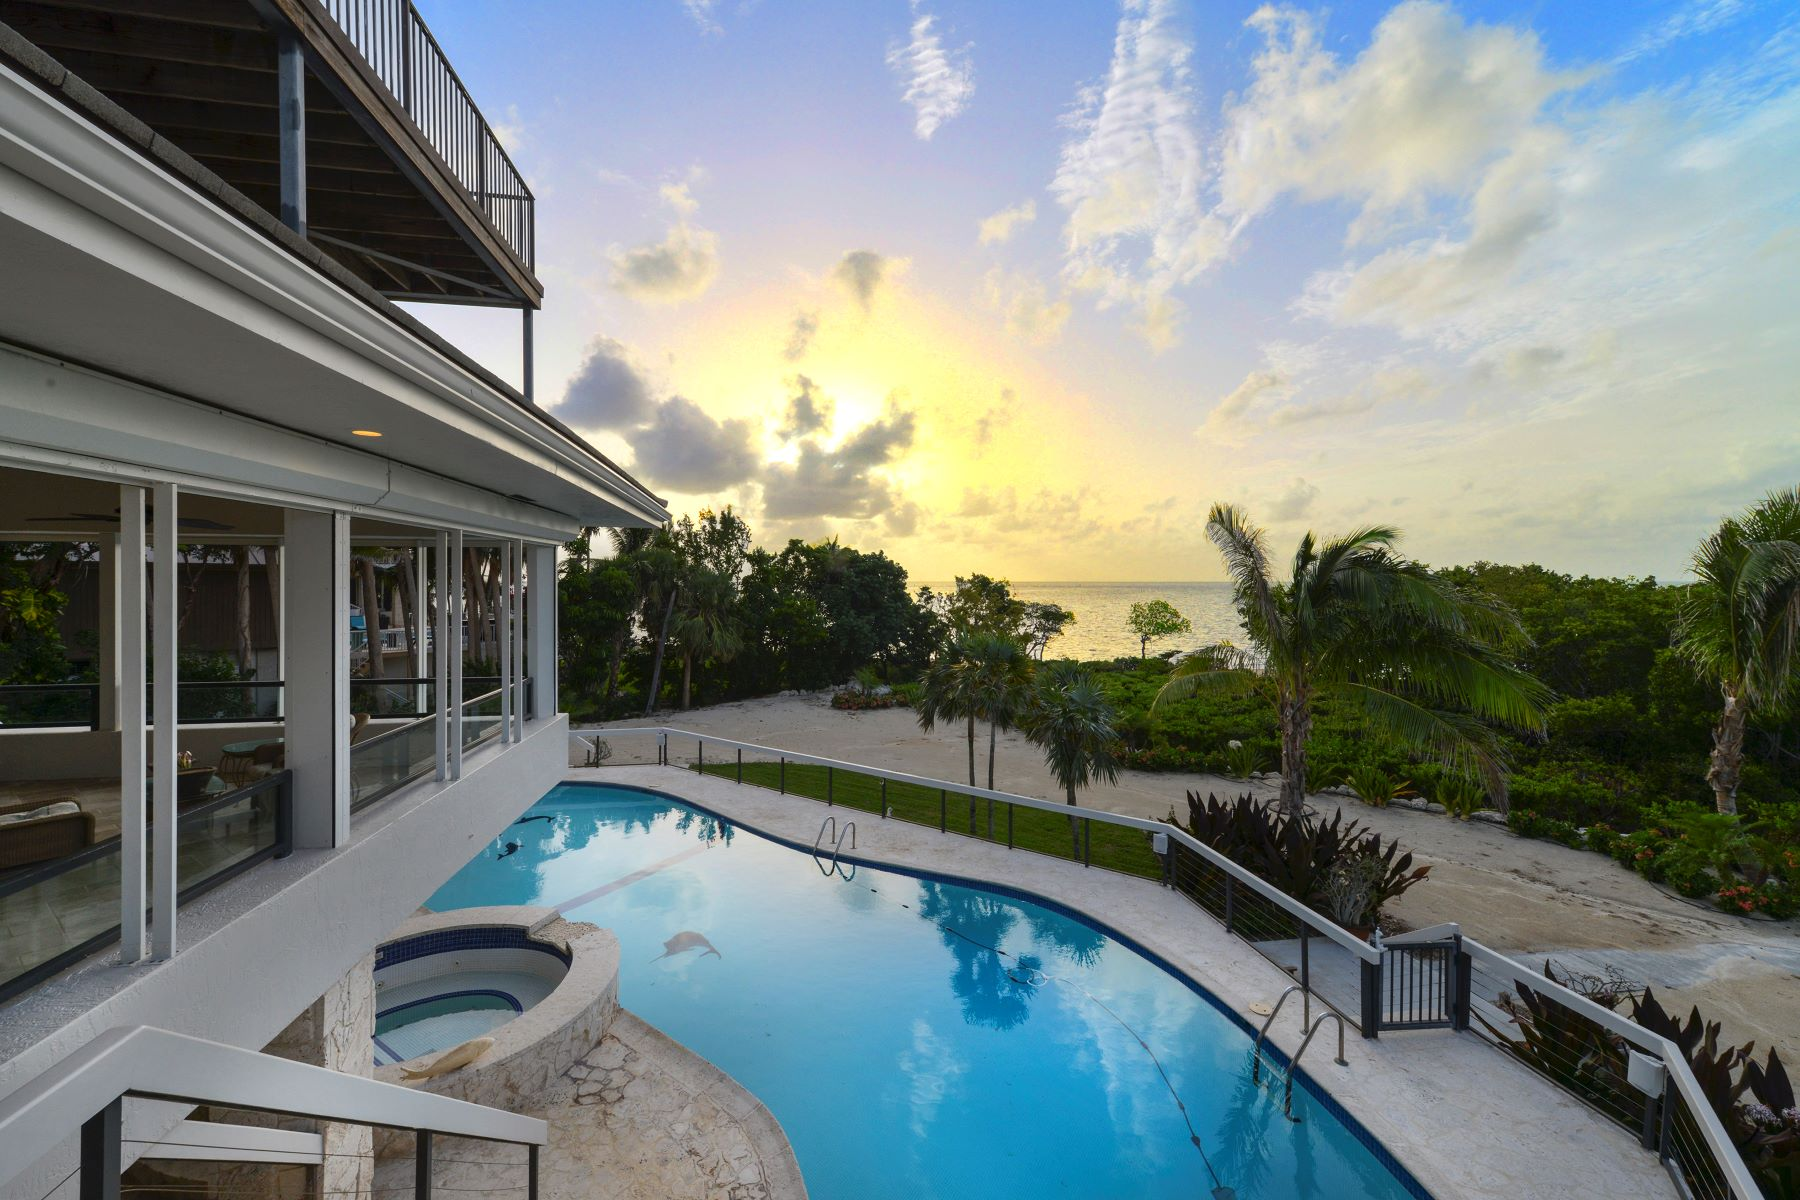 Single Family Homes for Active at 19 Sunrise Cay Drive, Key Largo, FL 19 Sunrise Cay Drive Key Largo, Florida 33037 United States